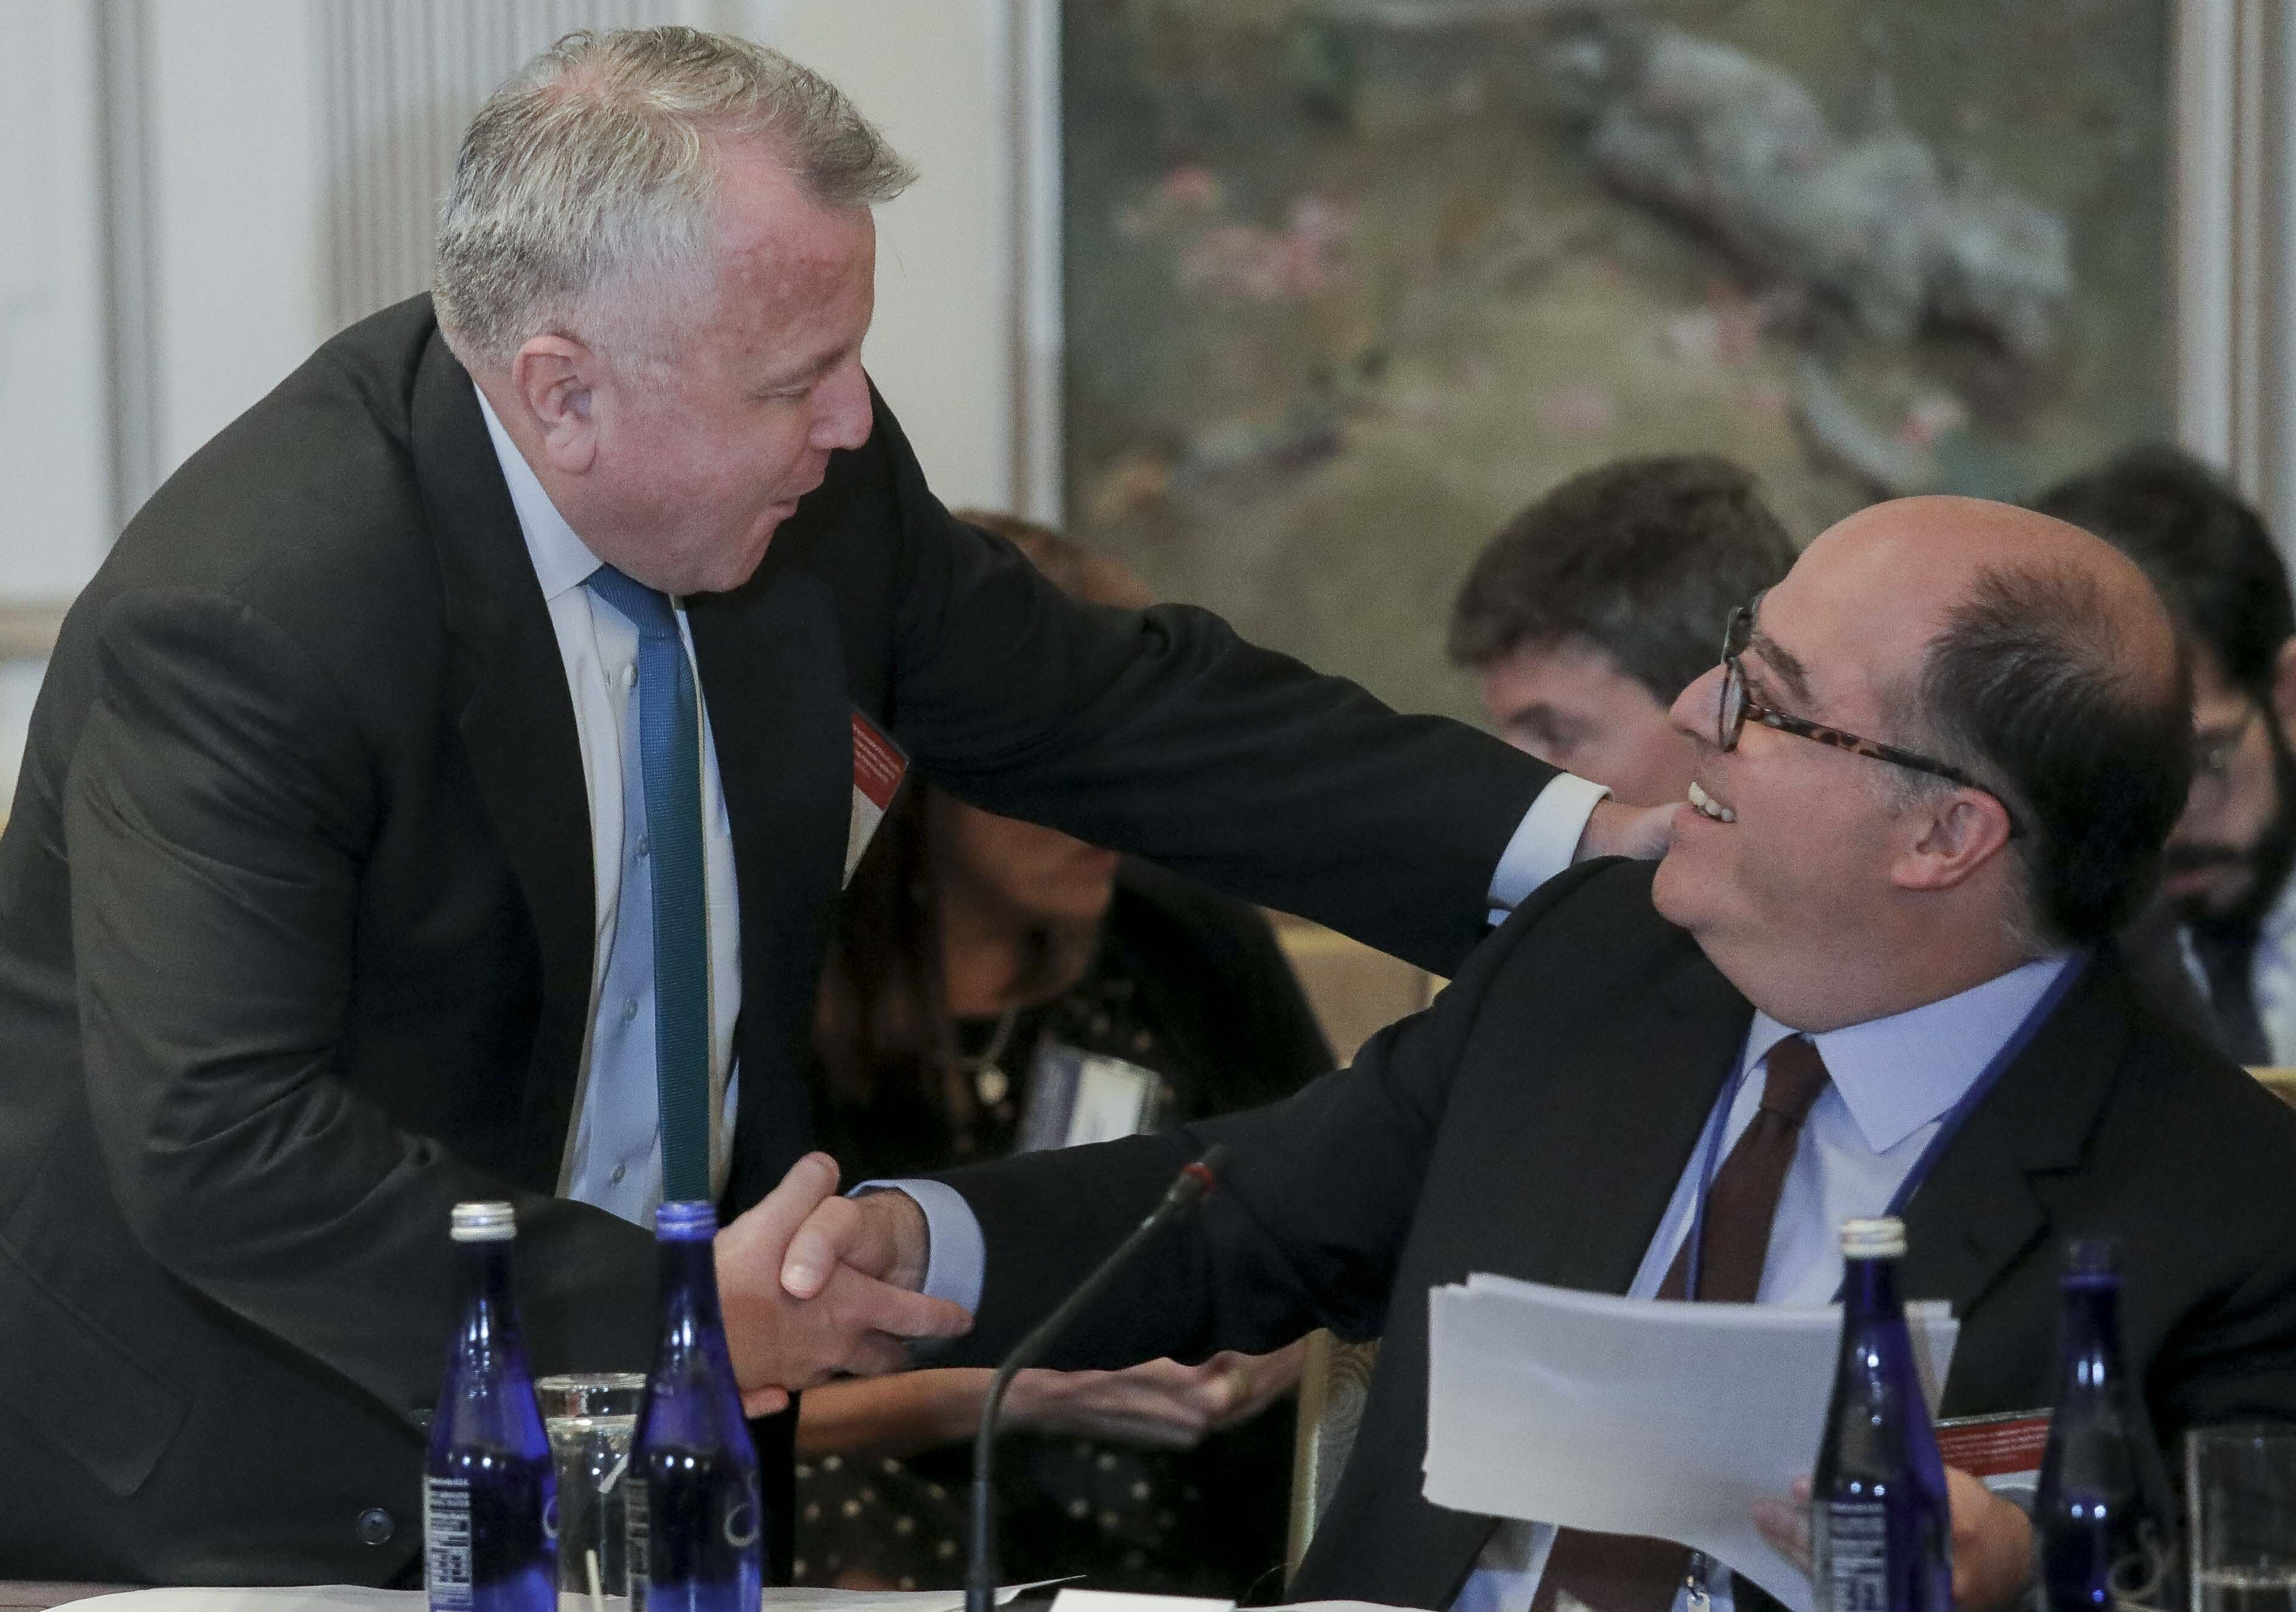 U.S. Deputy Secretary of State John Sullivan, left, and Julio Borges, an opposition leader in Venezuela, shake hands before a meeting organized by the OAS, to discuss sanctions on Venezuela, Monday Sept. 23, 2019, in New York. (AP Photo/Bebeto Matthews)